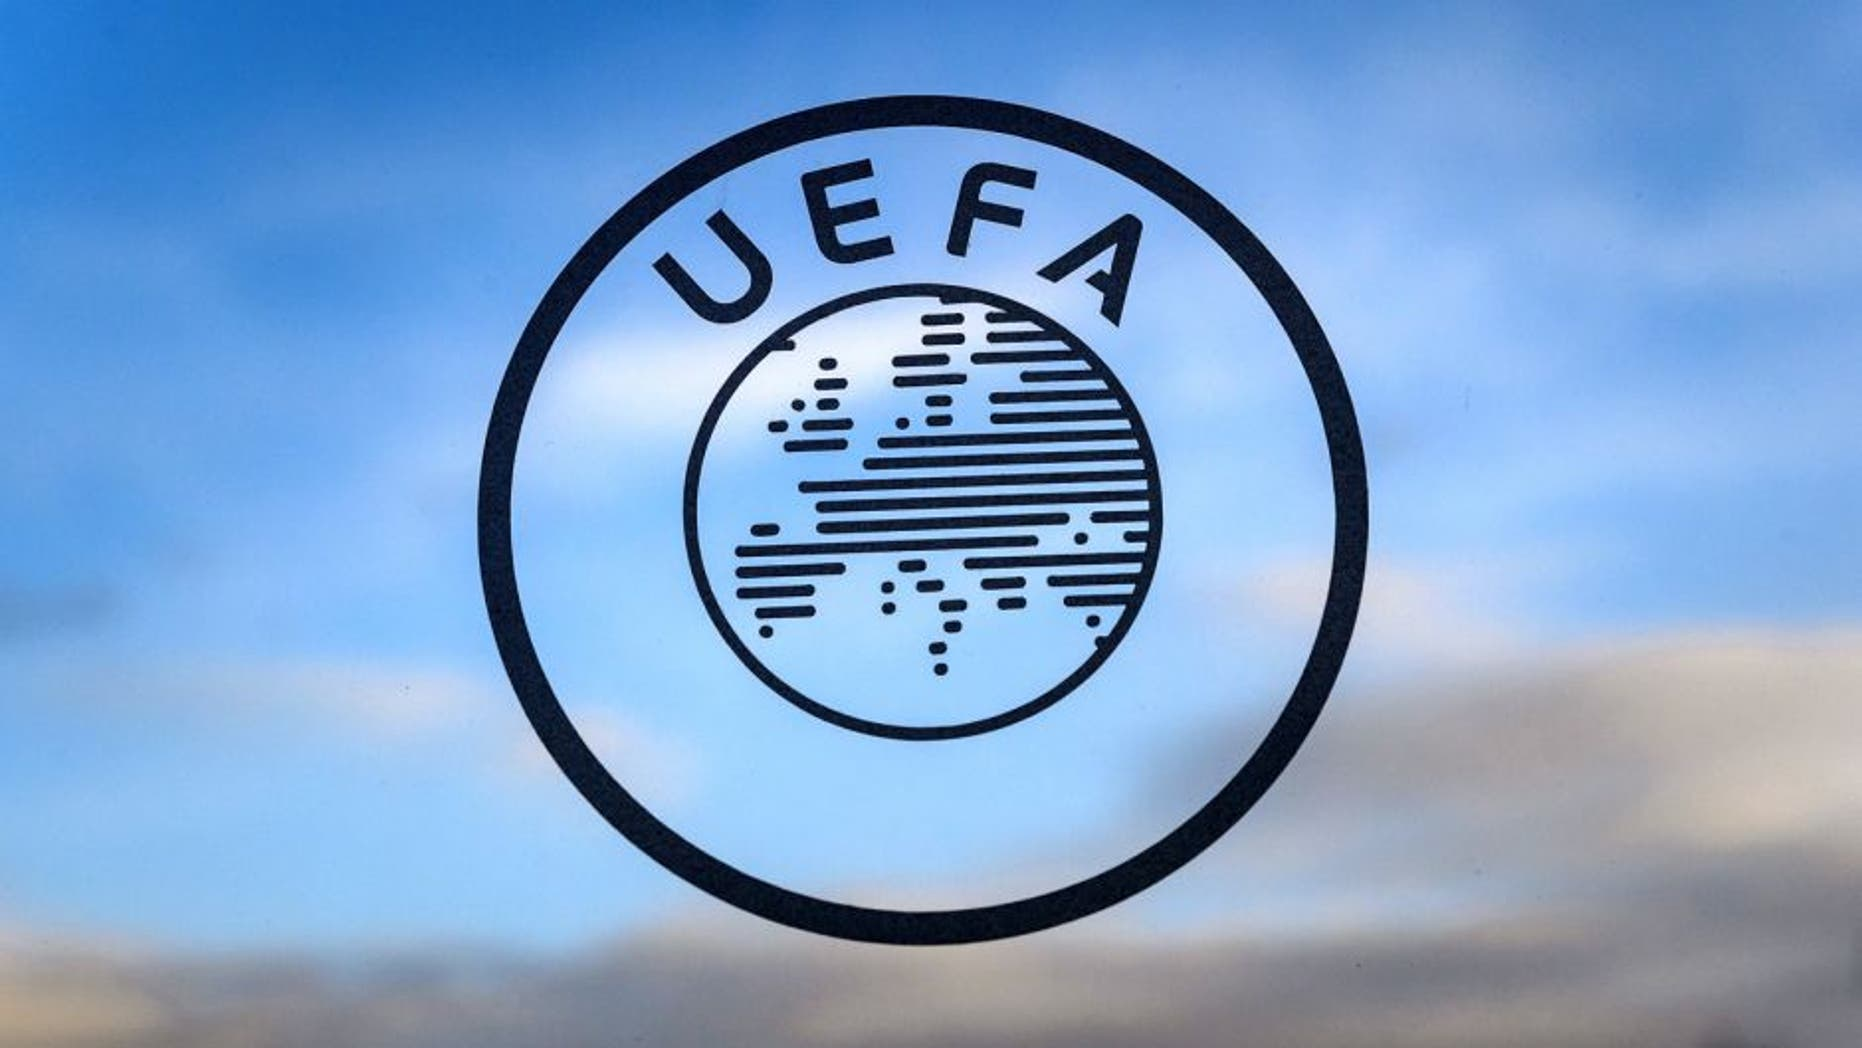 A logo of the UEFA the European football governing body is seen on December 15, 2014 at the UEFA headquarters in Nyon. AFP PHOTO / FABRICE COFFRINI (Photo credit should read FABRICE COFFRINI/AFP/Getty Images)